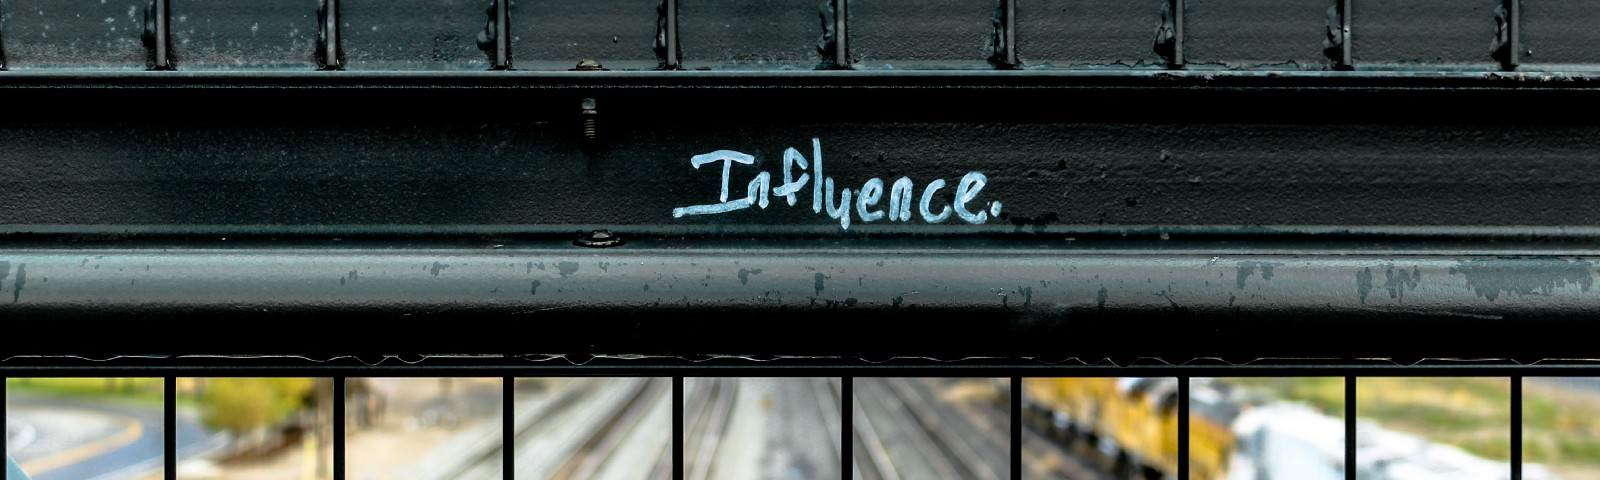 """A bridge overlooking railroad tracks with the word """"Influence"""" written on a guard rail"""